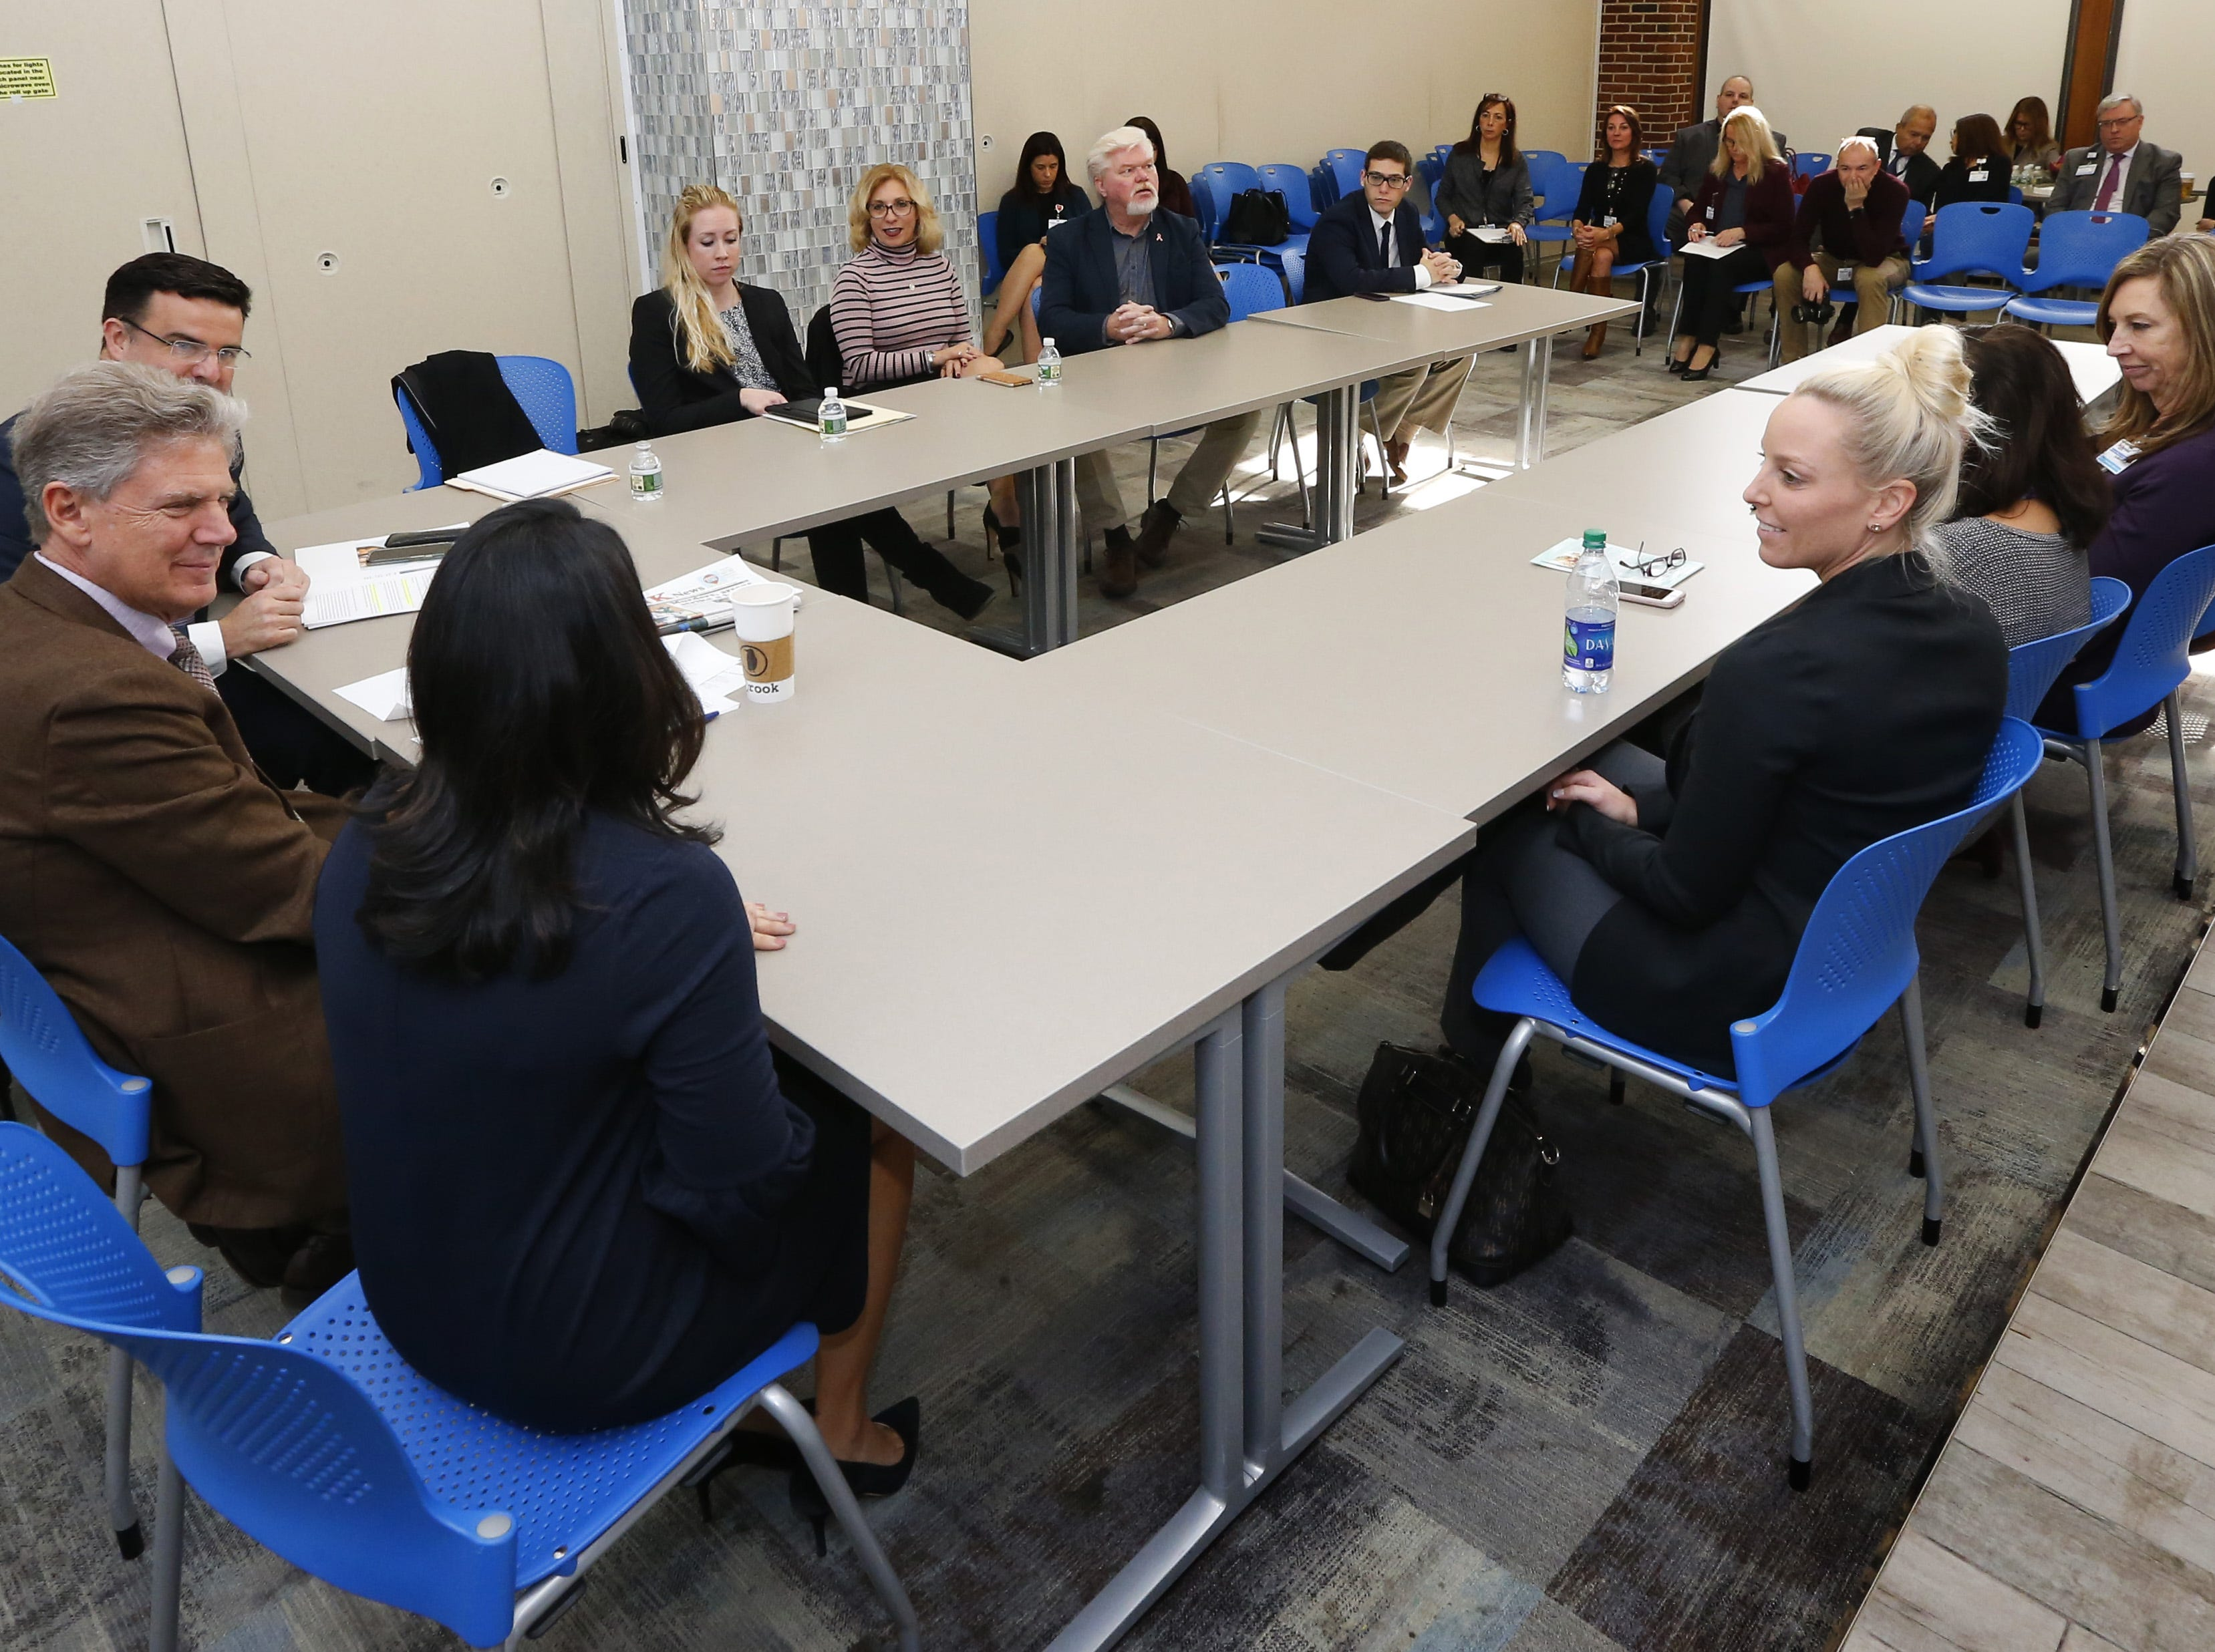 Ranking member of the House Energy and Commerce Committee, Rep. Frank Pallone, talks to hospital administrators during visit to Monmouth Medical Center in Long Branch, NJ.